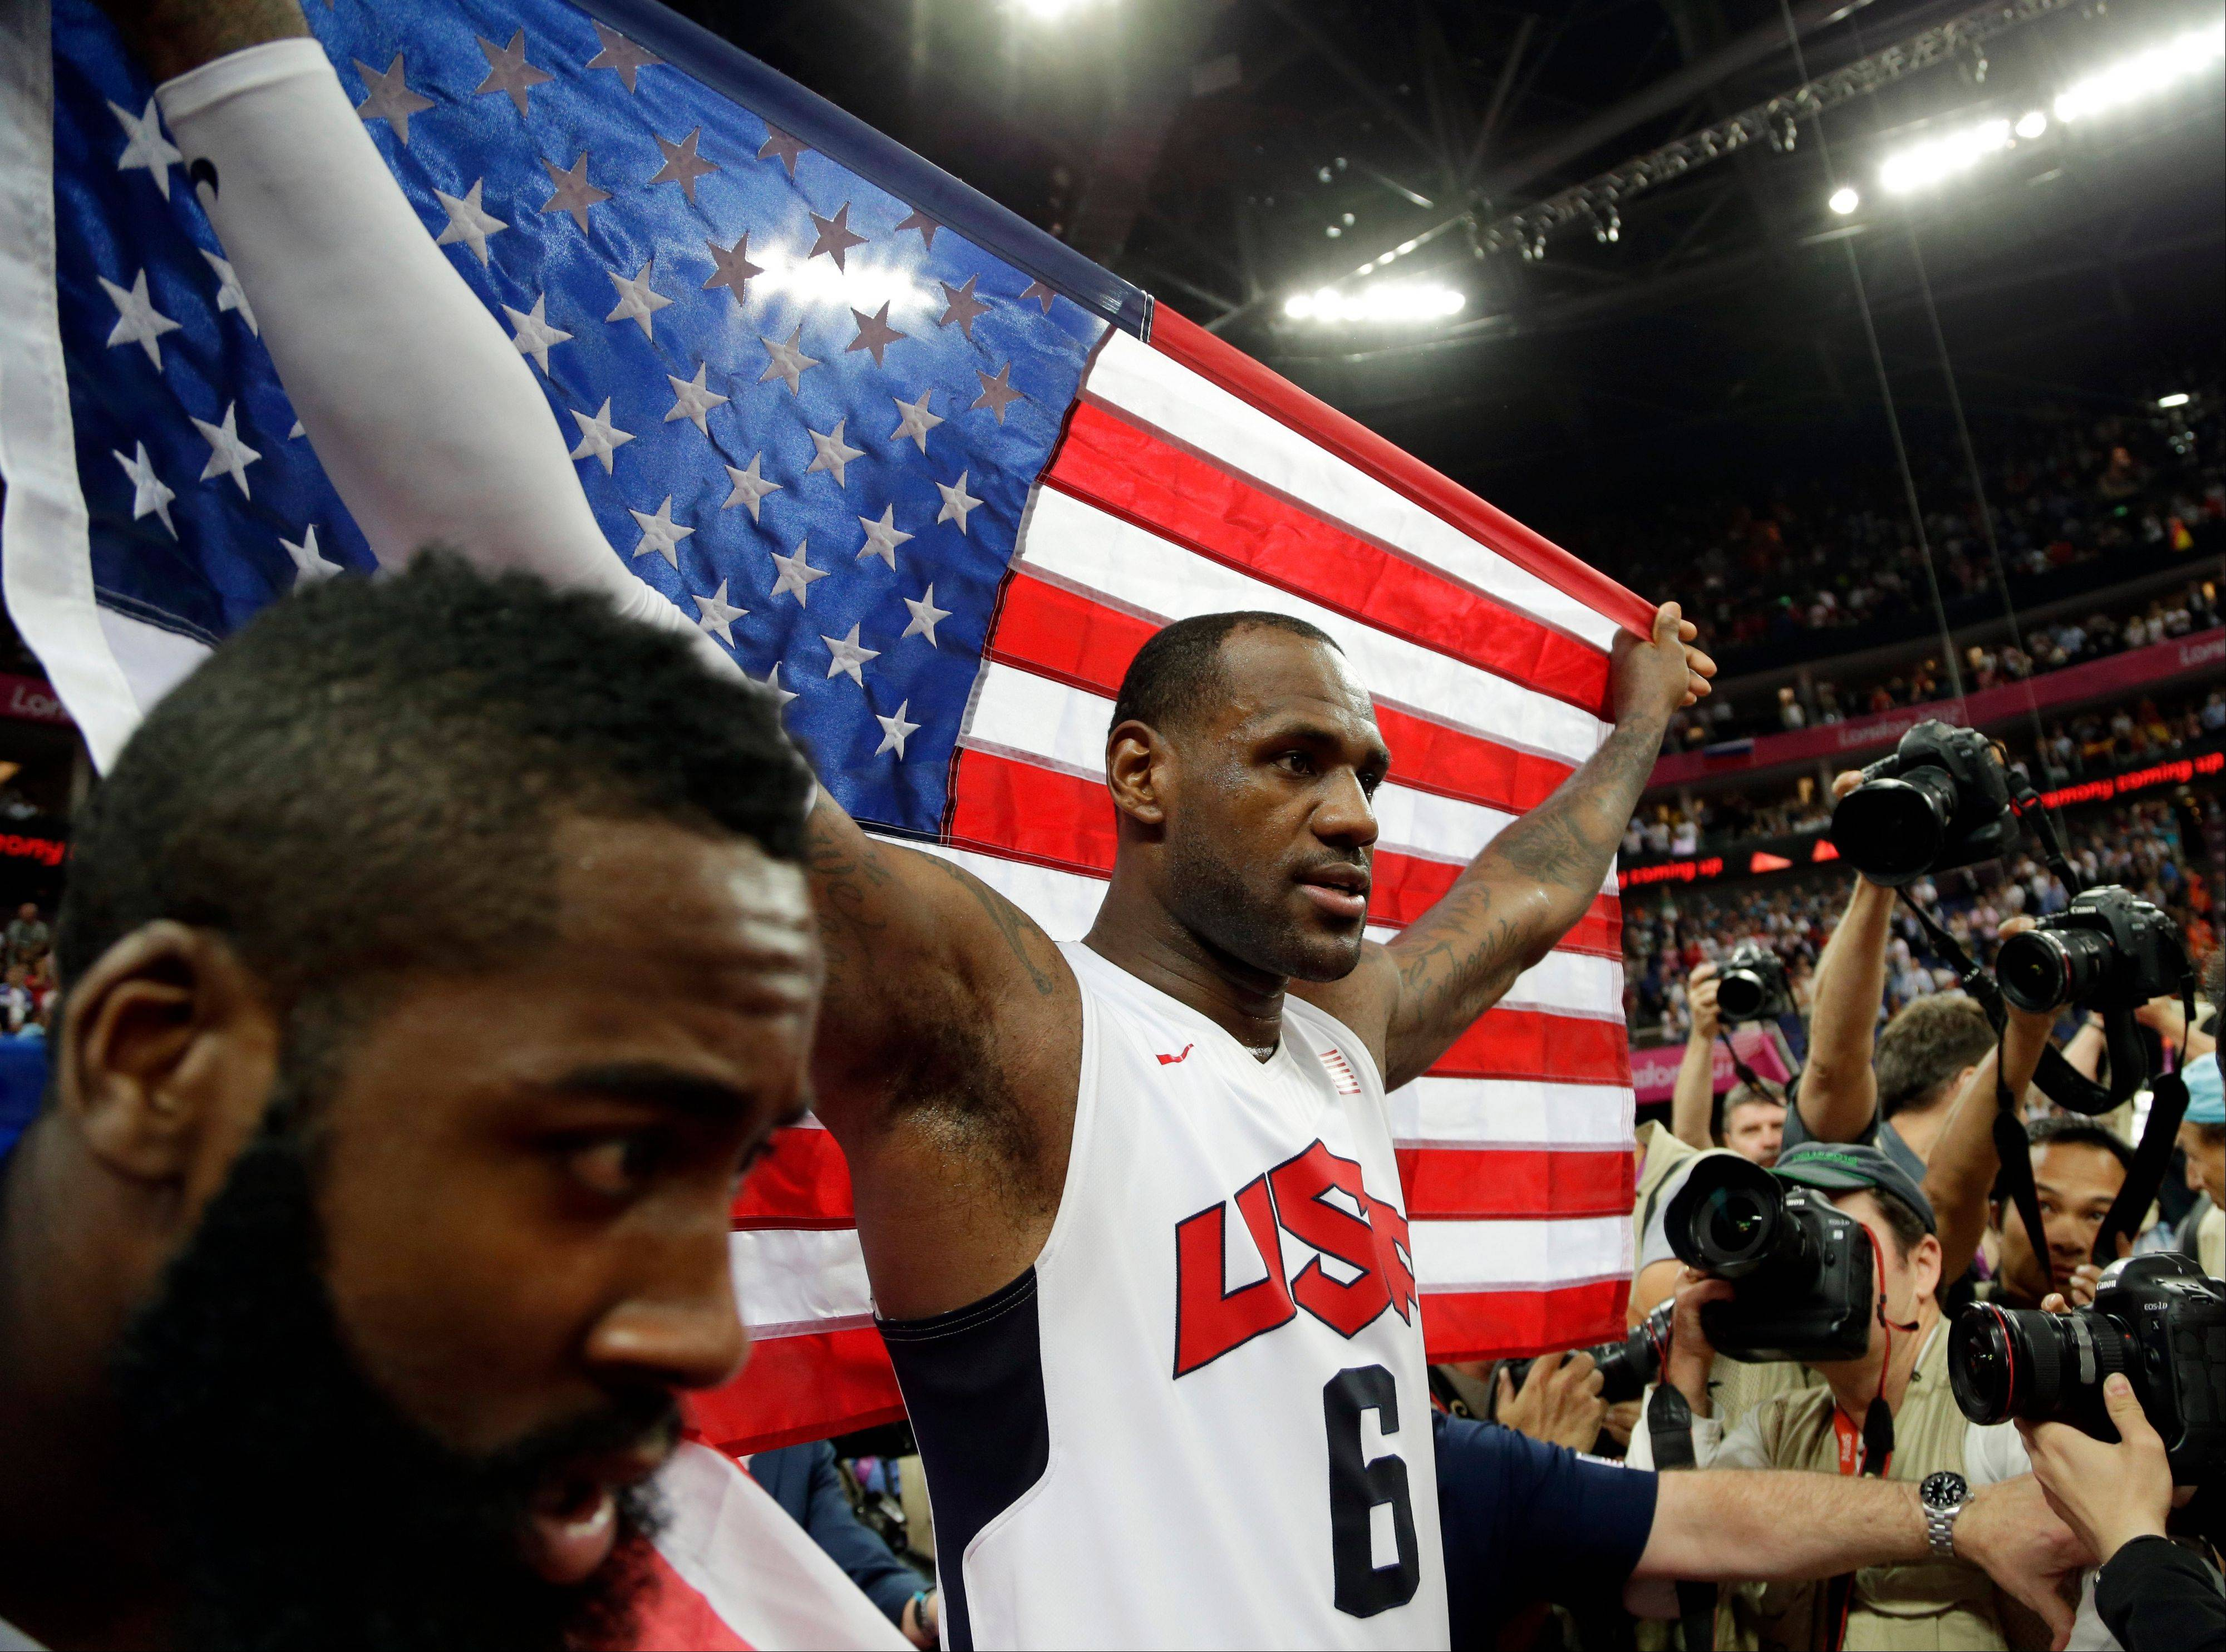 United States' LeBron James celebrates after the men's gold medal basketball game at the 2012 Summer Olympics, Sunday, Aug. 12, 2012, in London. USA won 107-100.